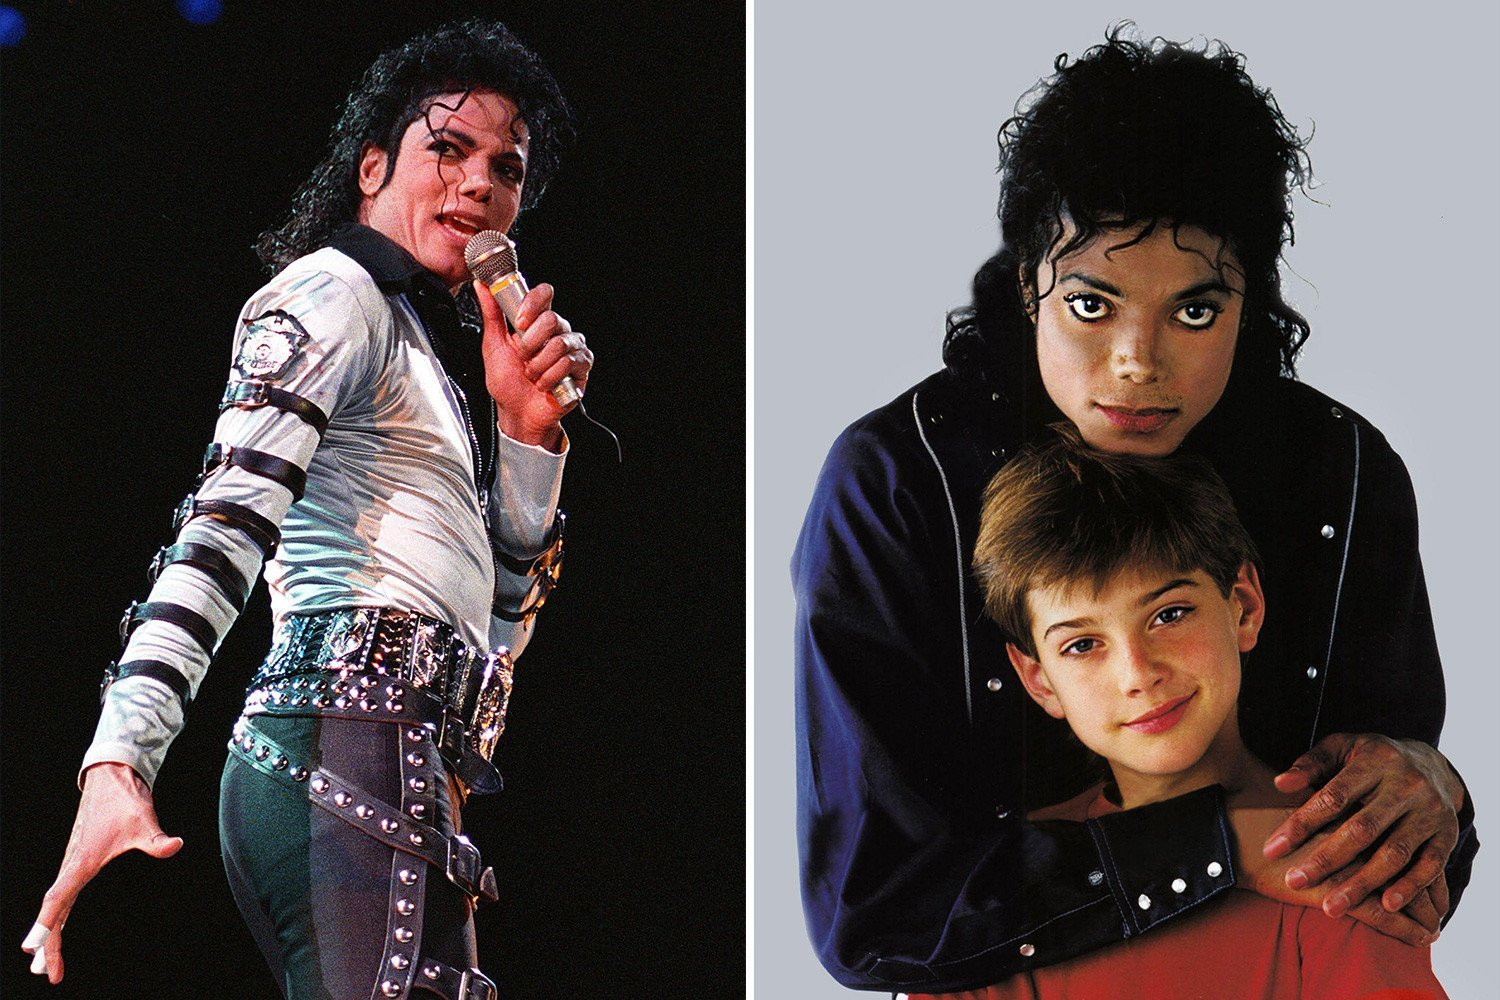 Michael Jackson's behaviour was so 'deeply suspicious' during 1988 tour that witnesses asked 10-year-old James Safechuck if he was being held against his will